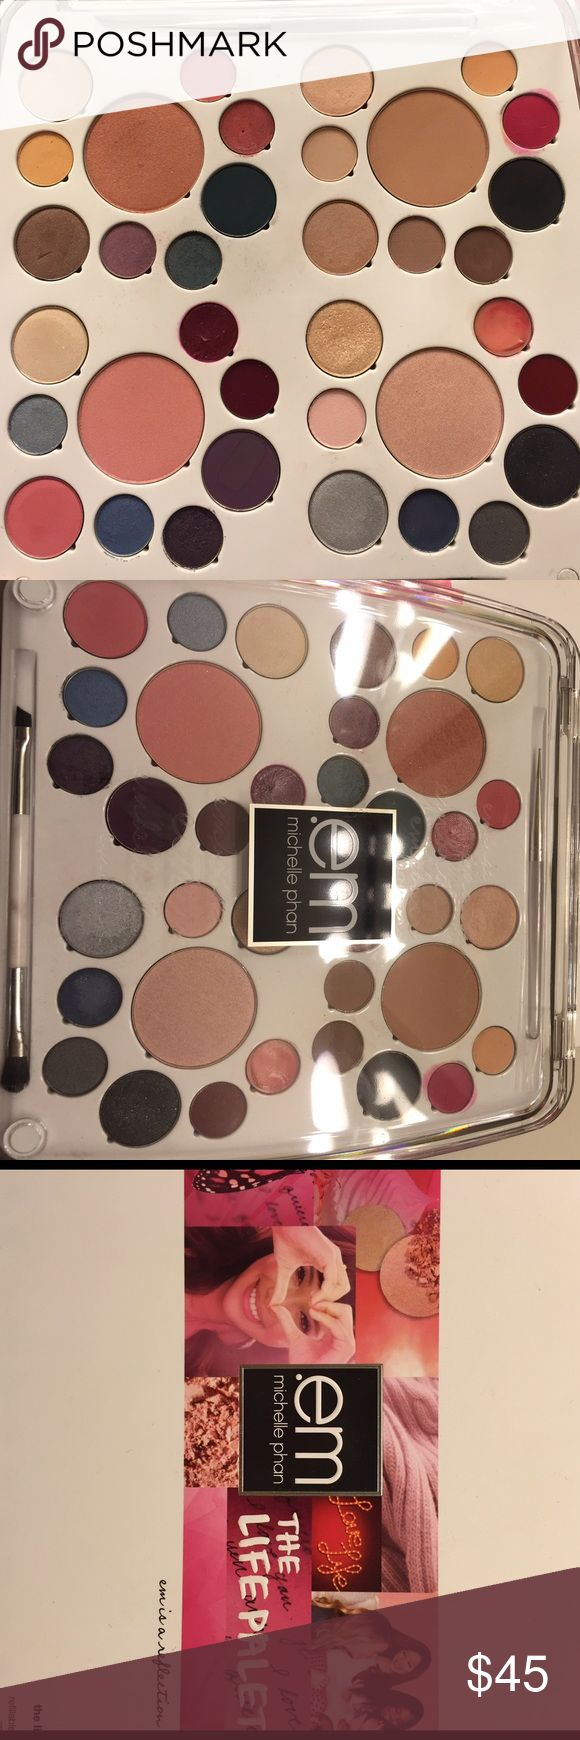 Michelle Pham Life Palette em life palette. Still has box a few colors tested but most are new and in great condition. It comes with an extra on the go smaller palette to make your own palette to go on a vacation or weekend getaway. Very versatile and great to have. Accessories